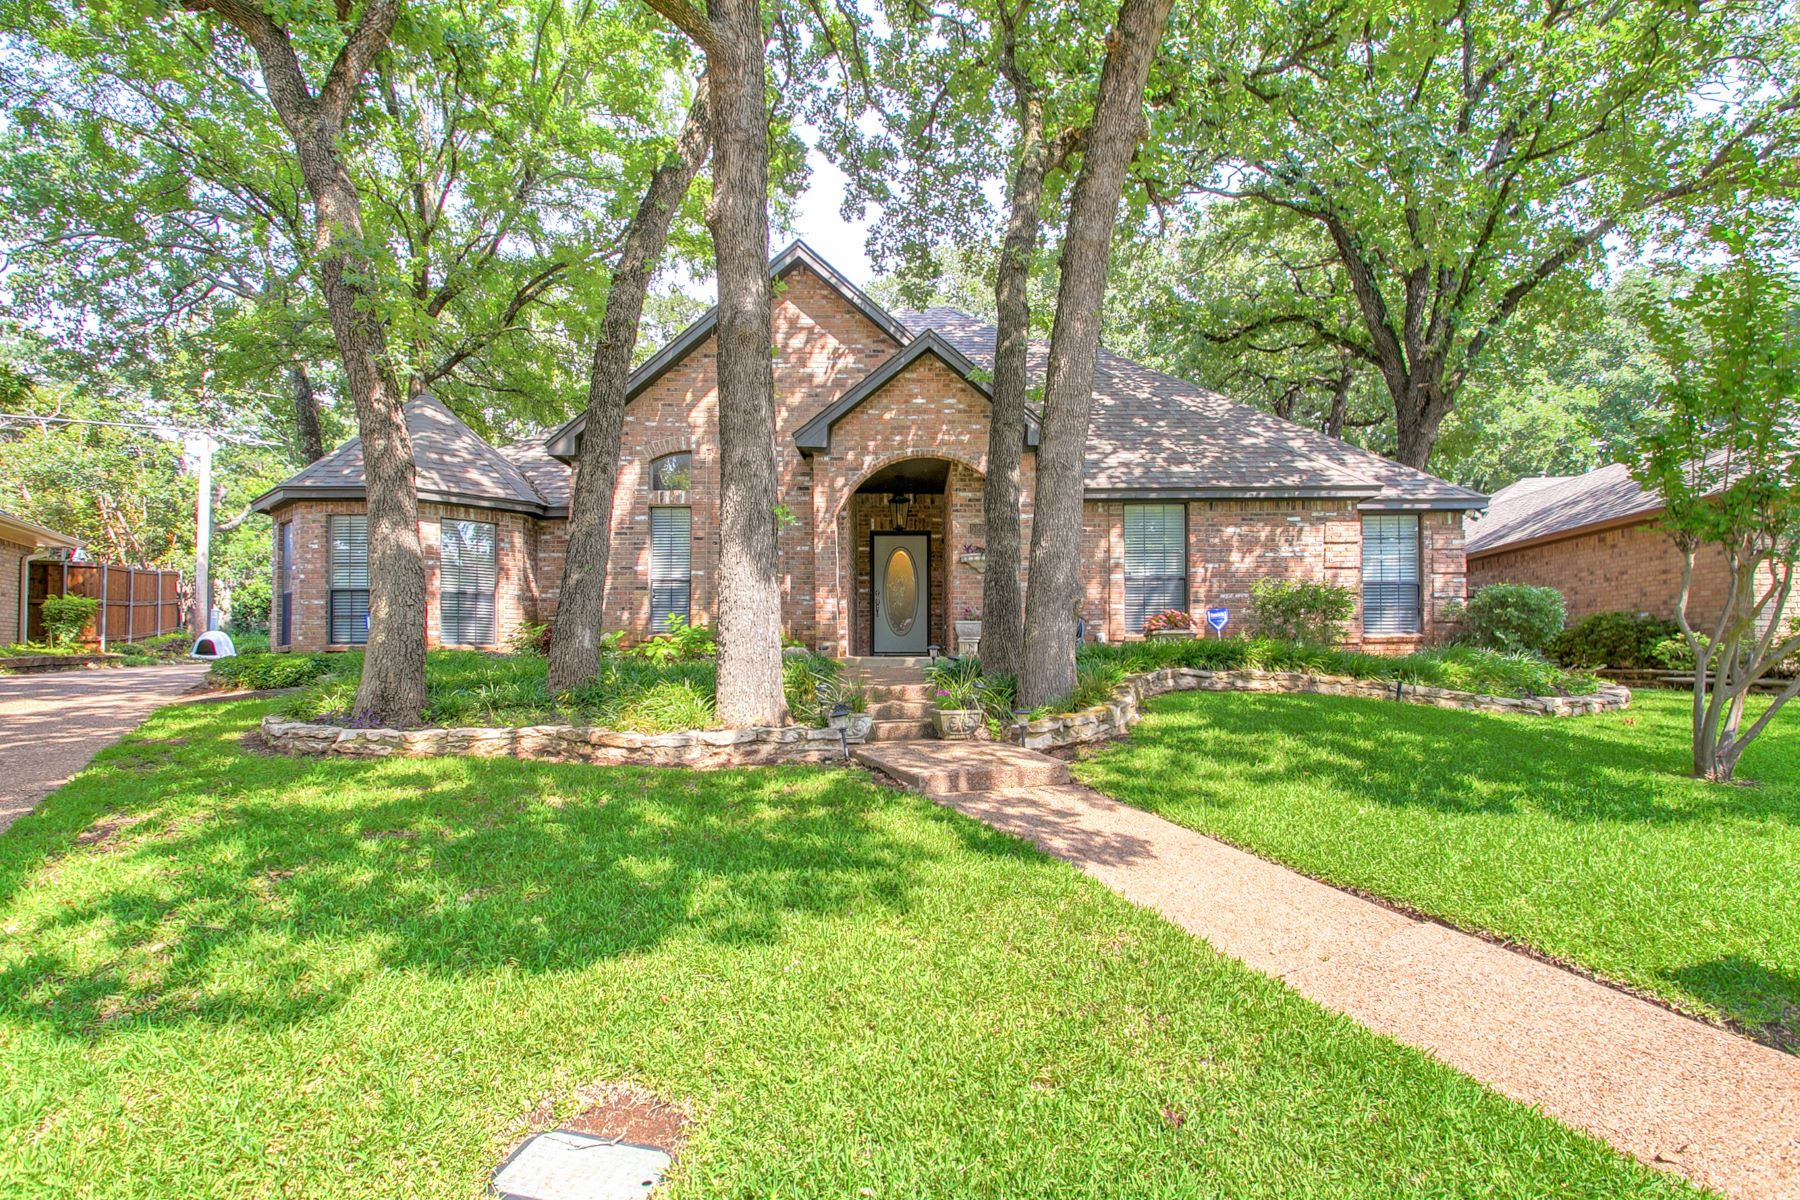 Single Family Homes for Sale at Tree shaded family home 5221 Boyd Trail Arlington, Texas 76017 United States